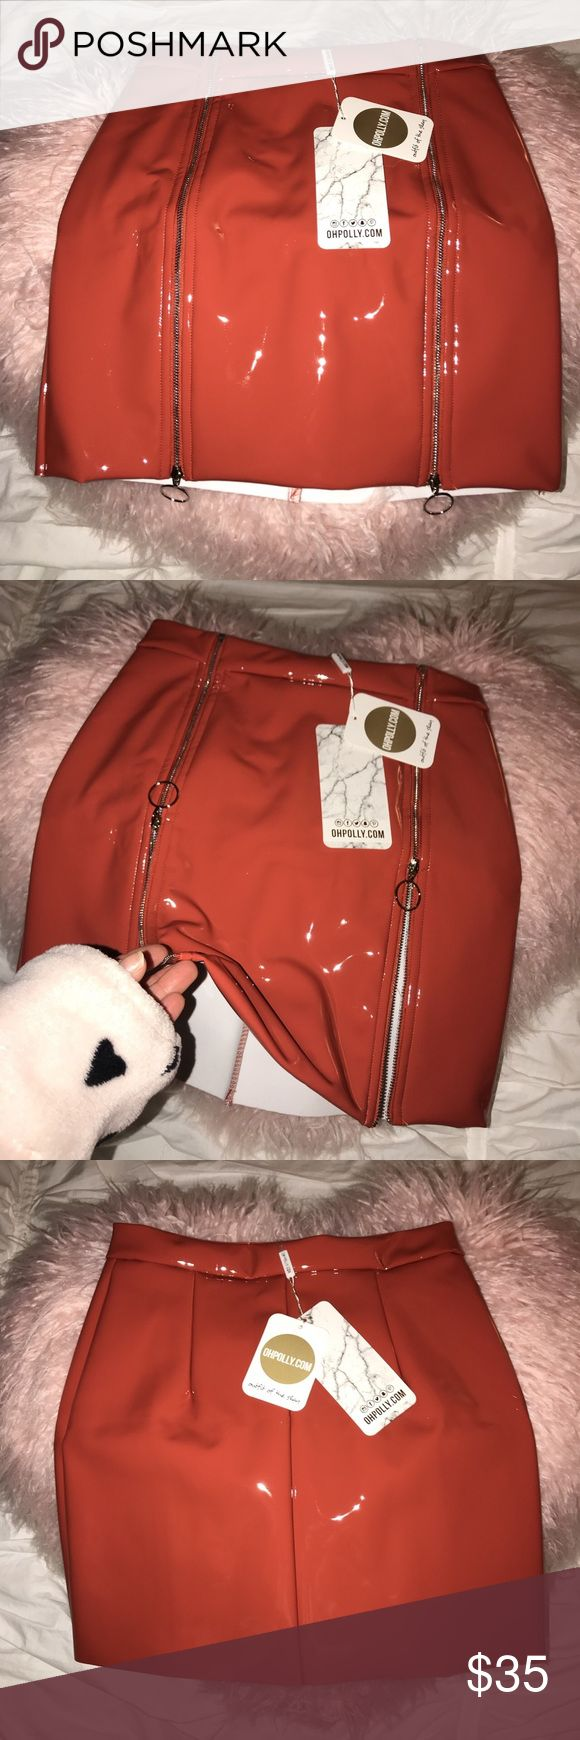 Oh Polly Zip It Real Good Vinyl Skirt in Orange •Zip It Real Good Vinyl Skirt in Orange  •Size UK8/US4 (Runs too small, too small for my ass. Recommend slender shape) •Condition: Brand new, never worn. Tags are attached  •Brand: Ohpolly ohpolly Skirts Mini